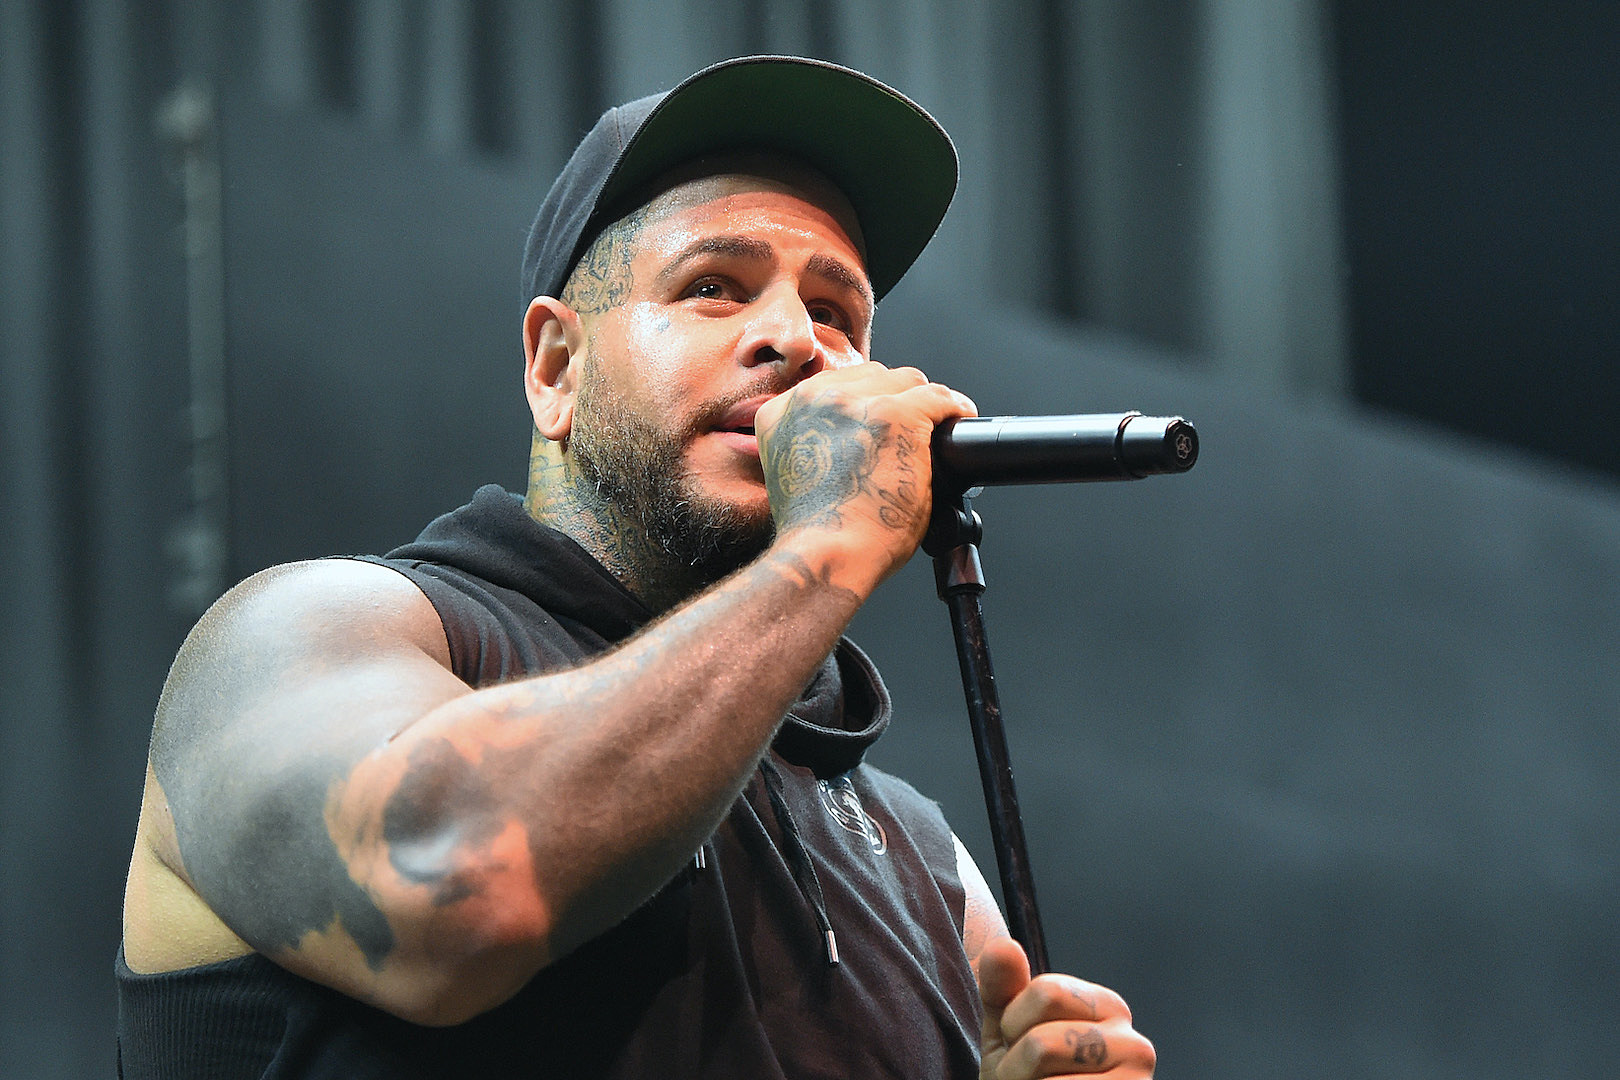 Report: Bad Wolves' Tommy Vext Accused of Assault